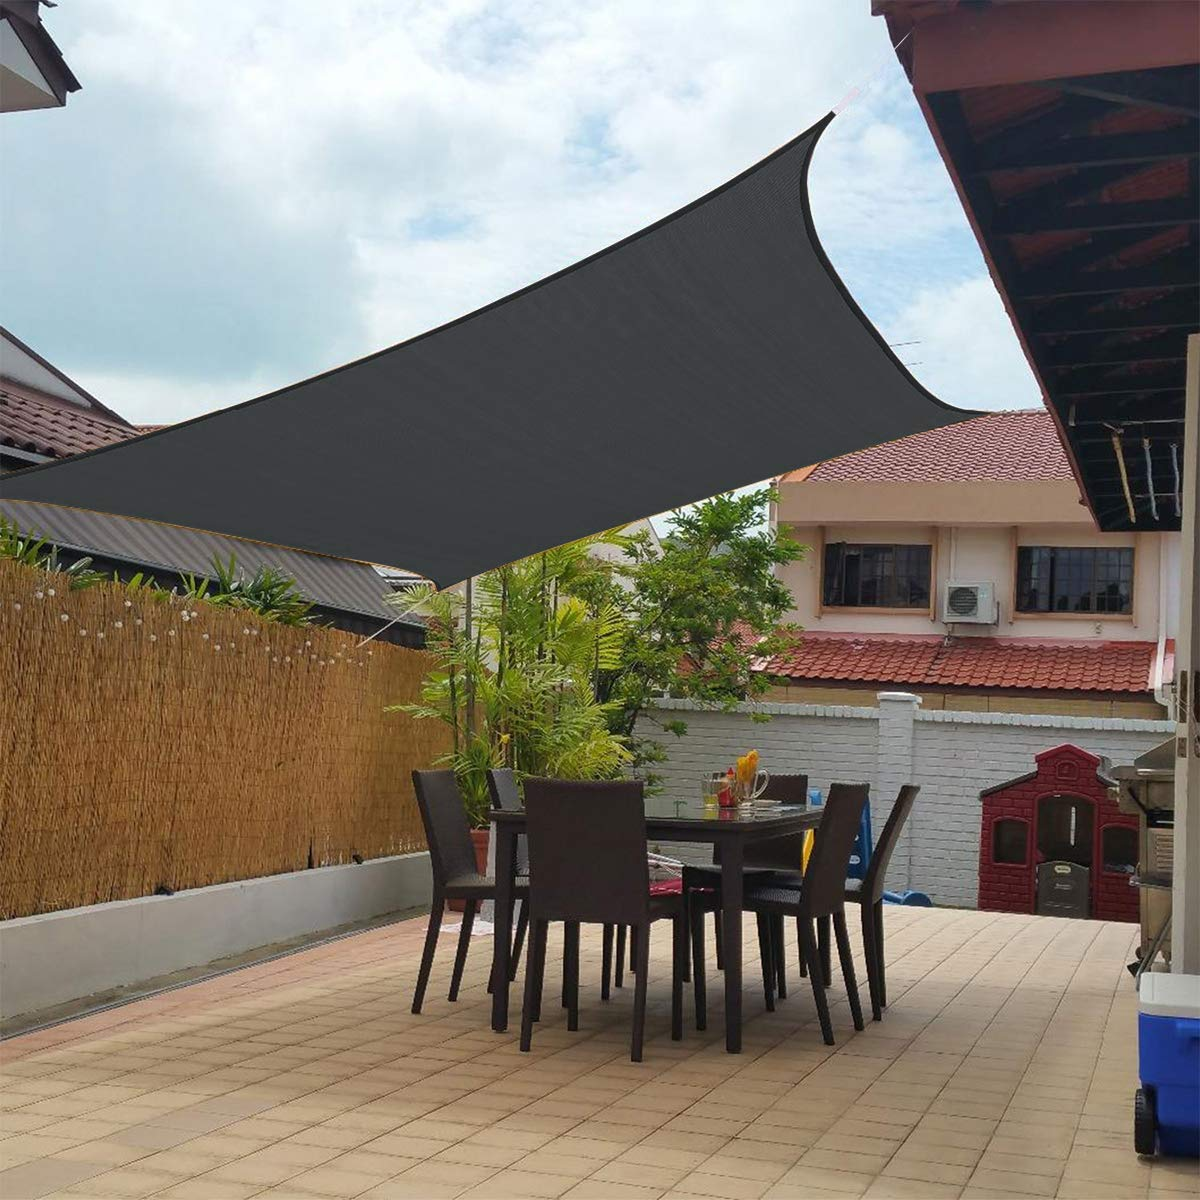 90/% UV Block Anti-UV Awning Canopy Fabric Durable Dark gray Patio MENGH Shade Sails 2x2m for Outdoor Garden Party